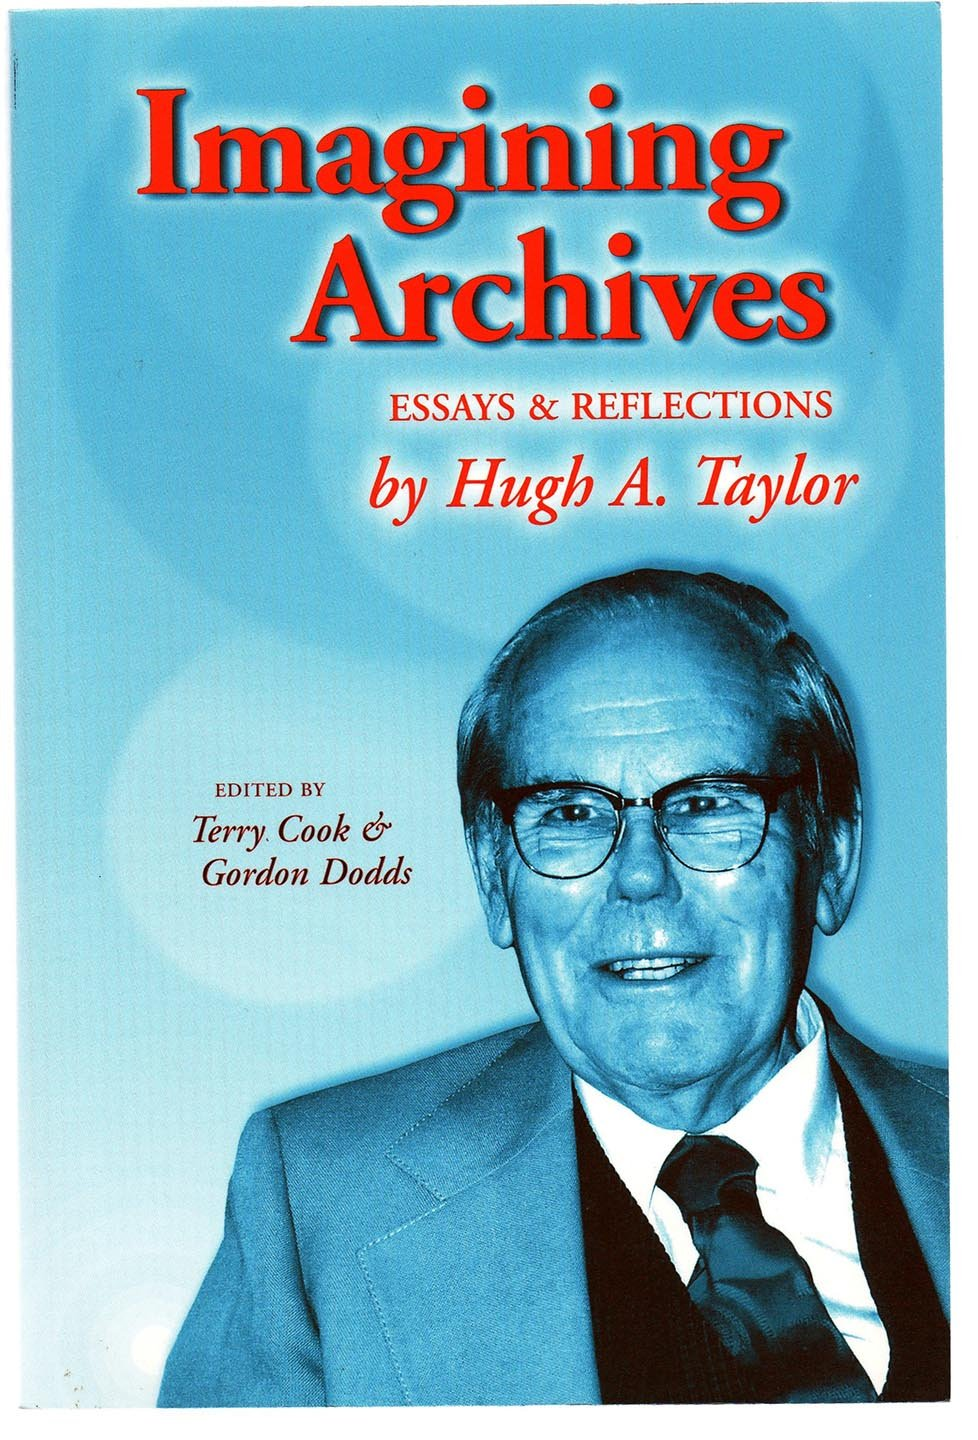 Imagining Archives: Essays & Reflections